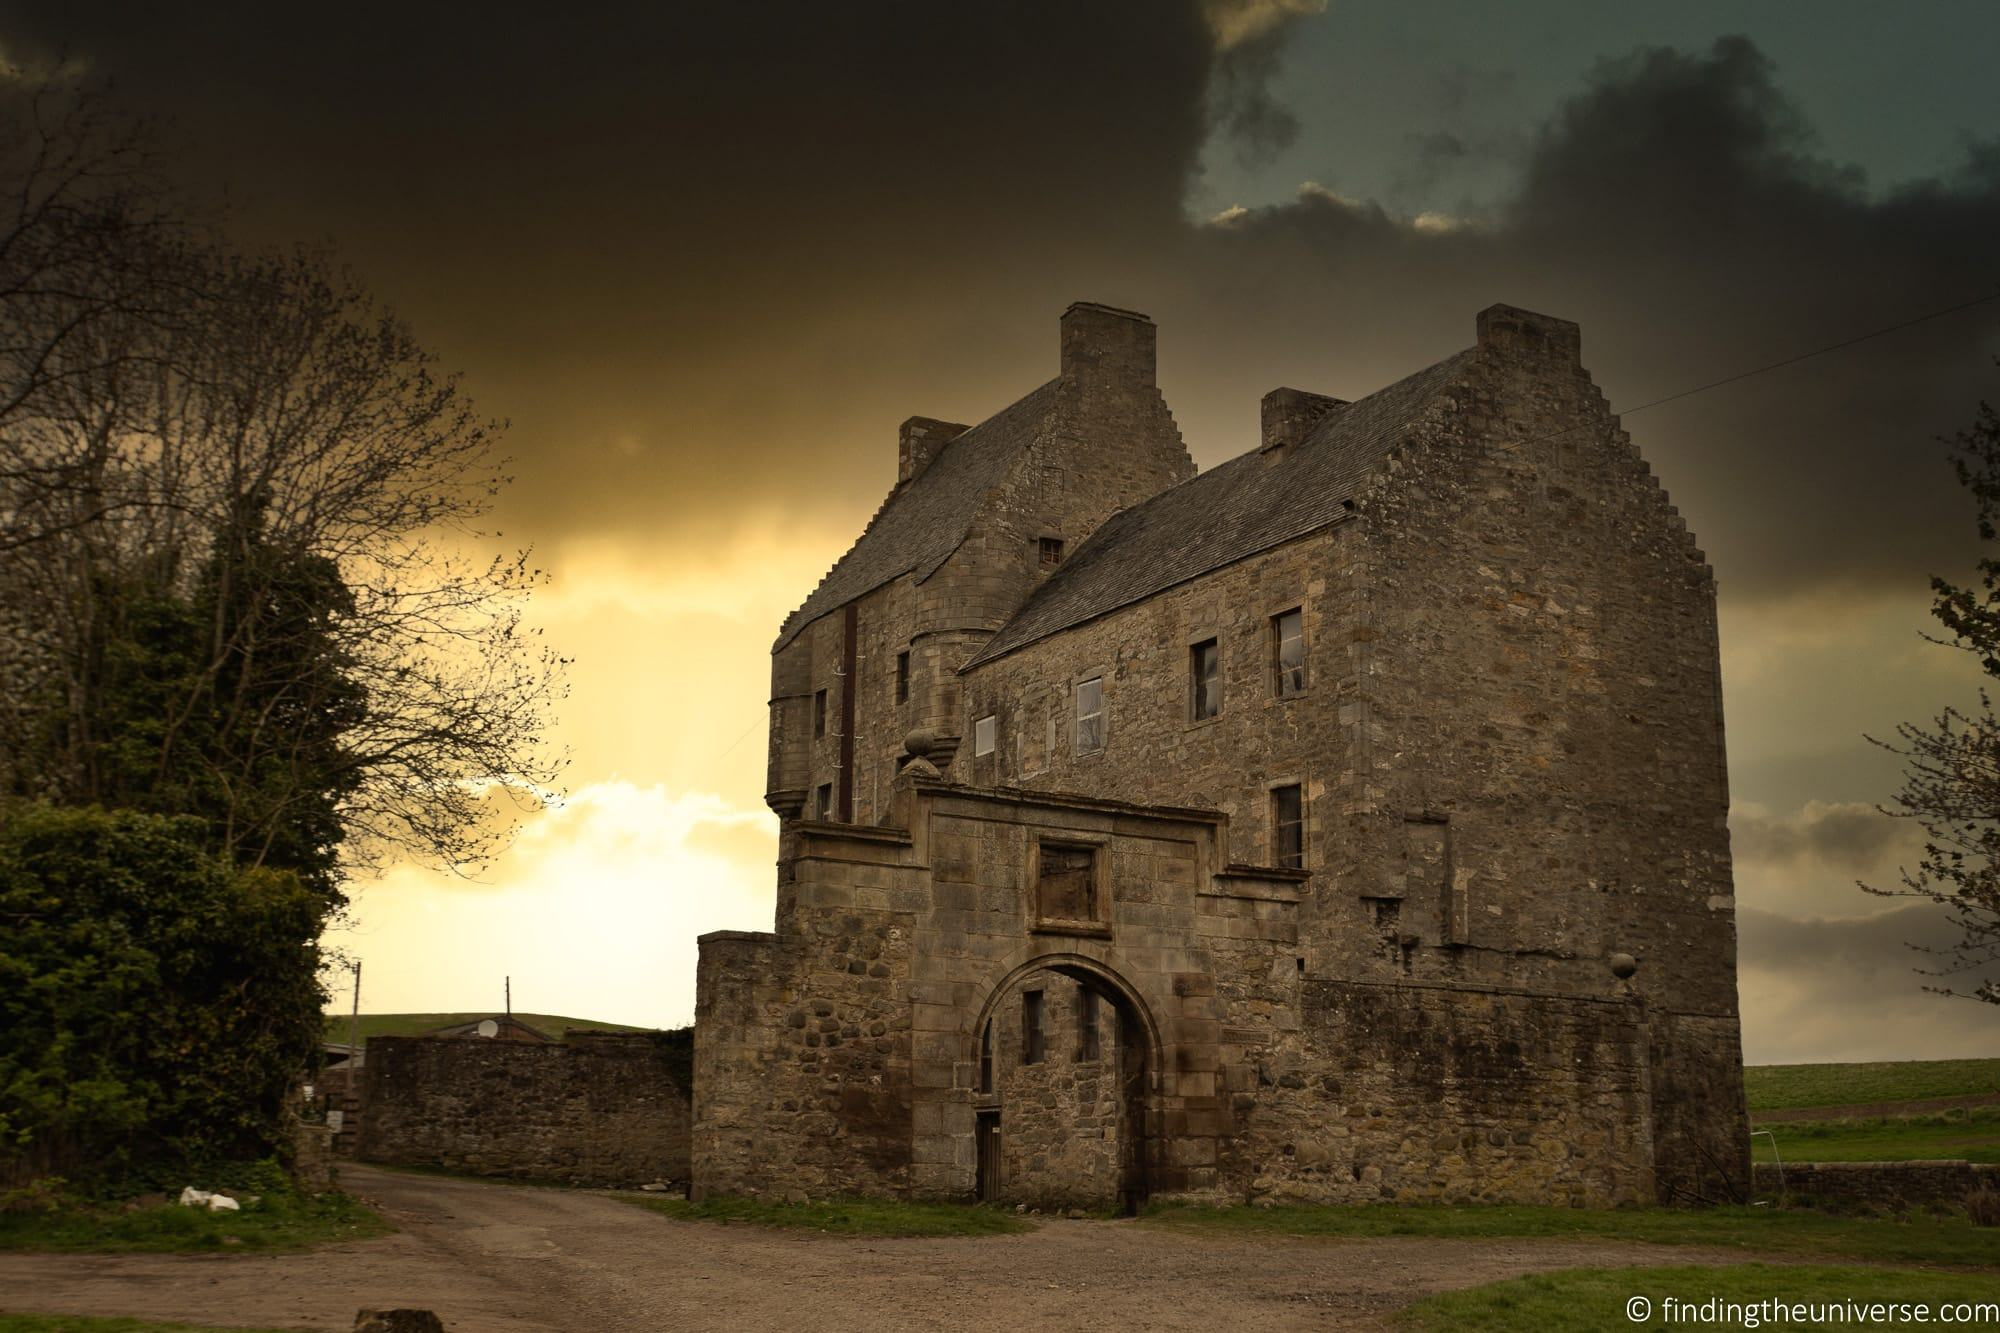 Outlander Filming Location - Midhope castle